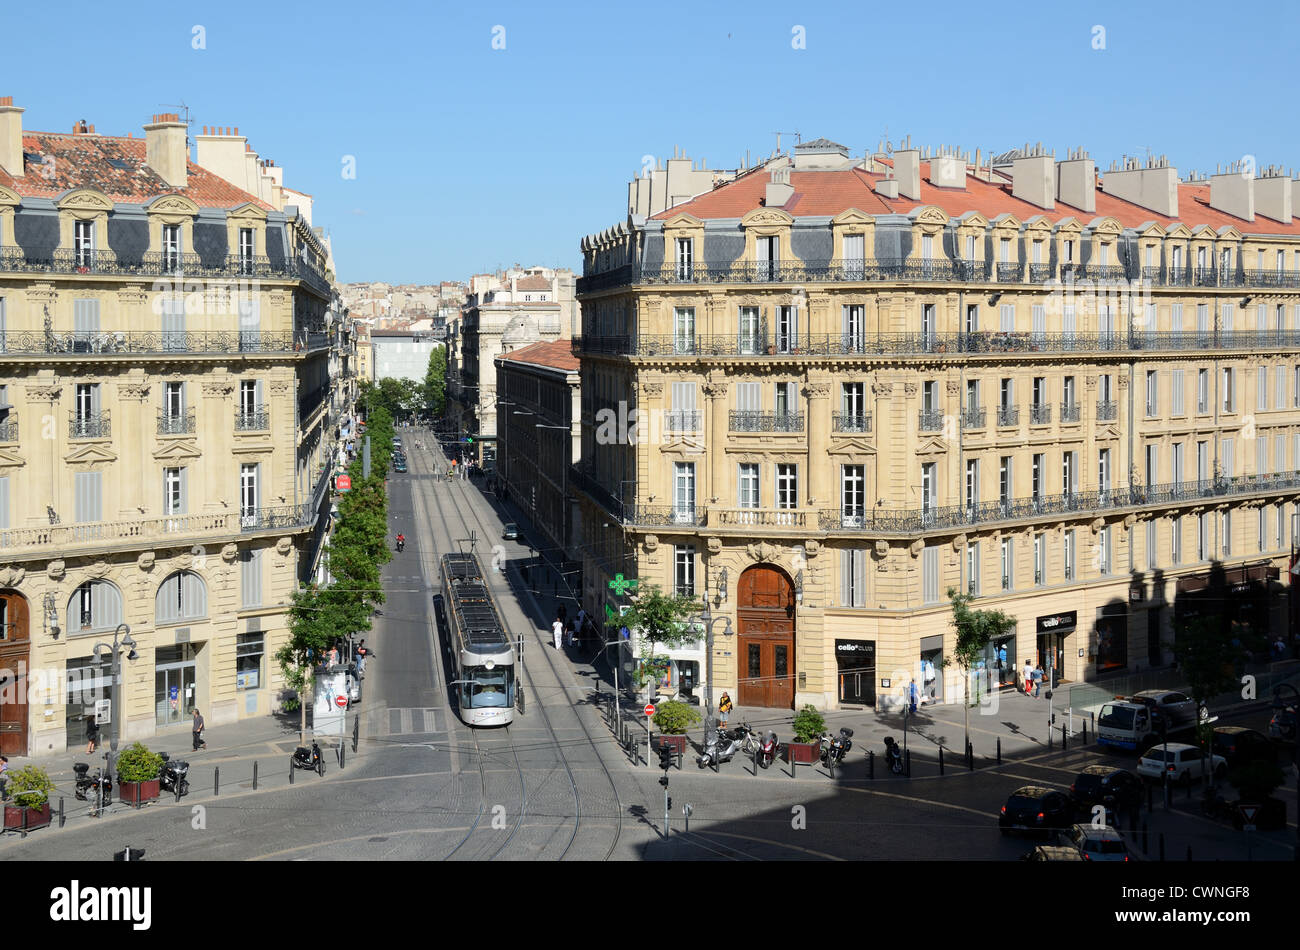 Tram and Tramway Running Along Rue Colbert and Rue de la République Marseille or Marseilles France - Stock Image